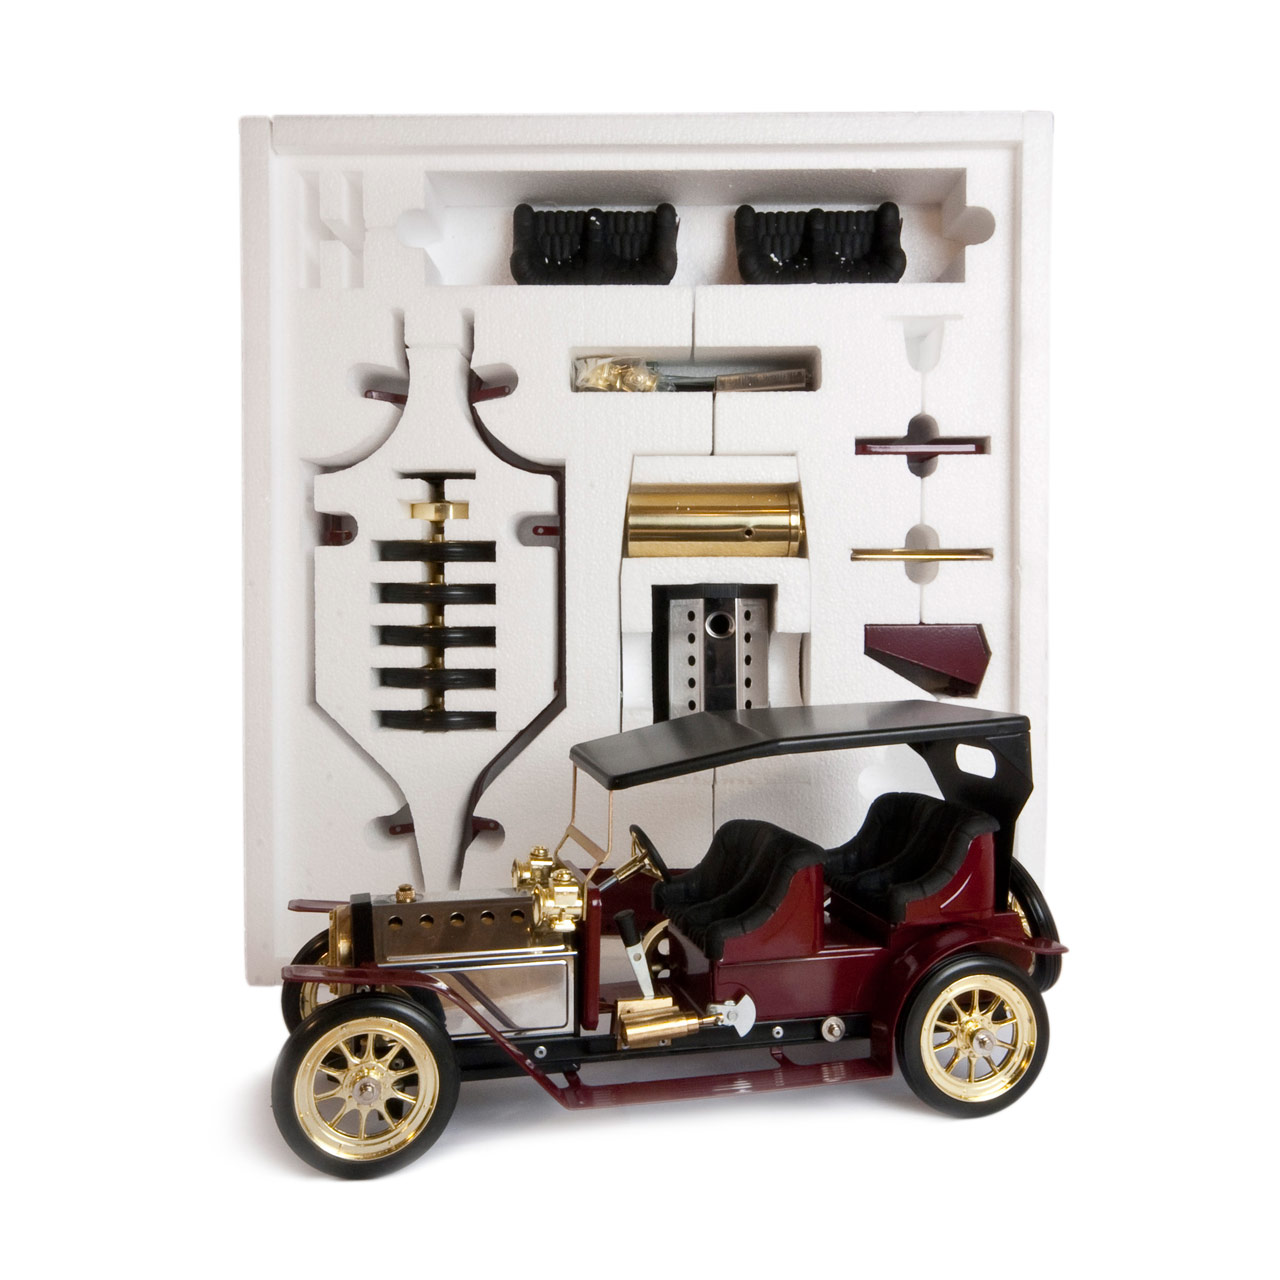 Mamod Live Steam Engines - Mamod Four Seater Limousine Kit Burgundy